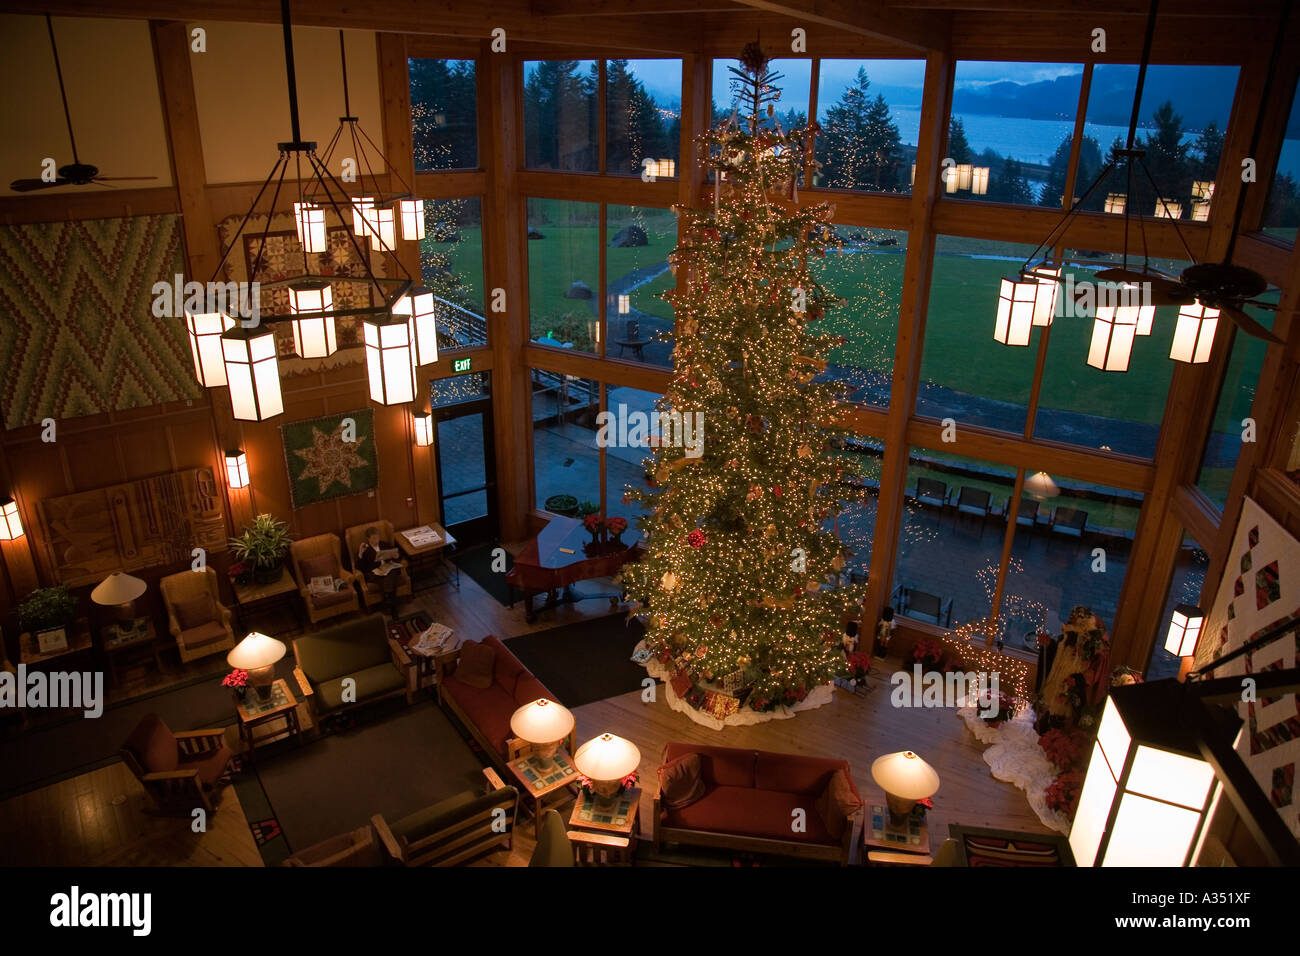 30 foot tall Christmas tree stands in lobby of Skamania Lodge ...